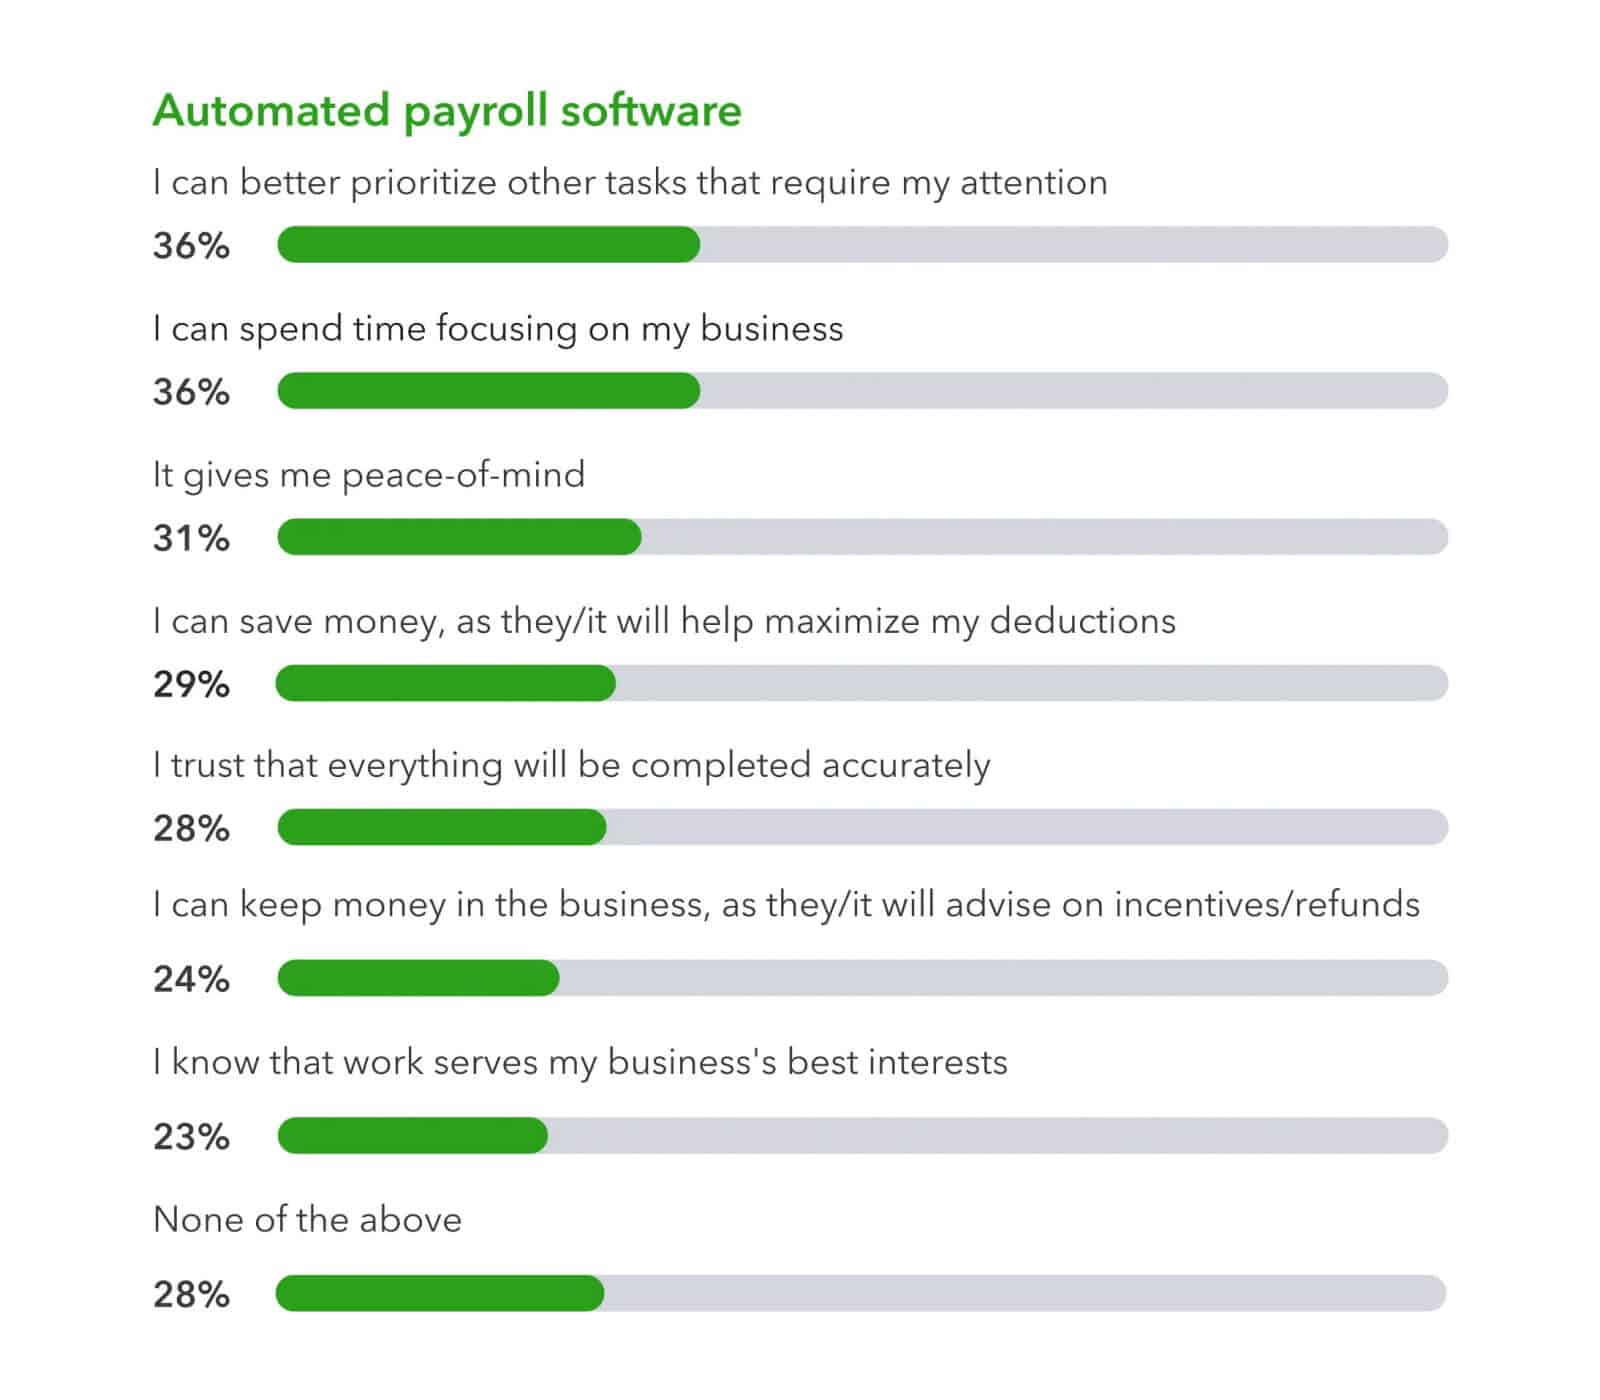 Small business owners say that using automated payroll software helps them save time, money and have more peace of mind